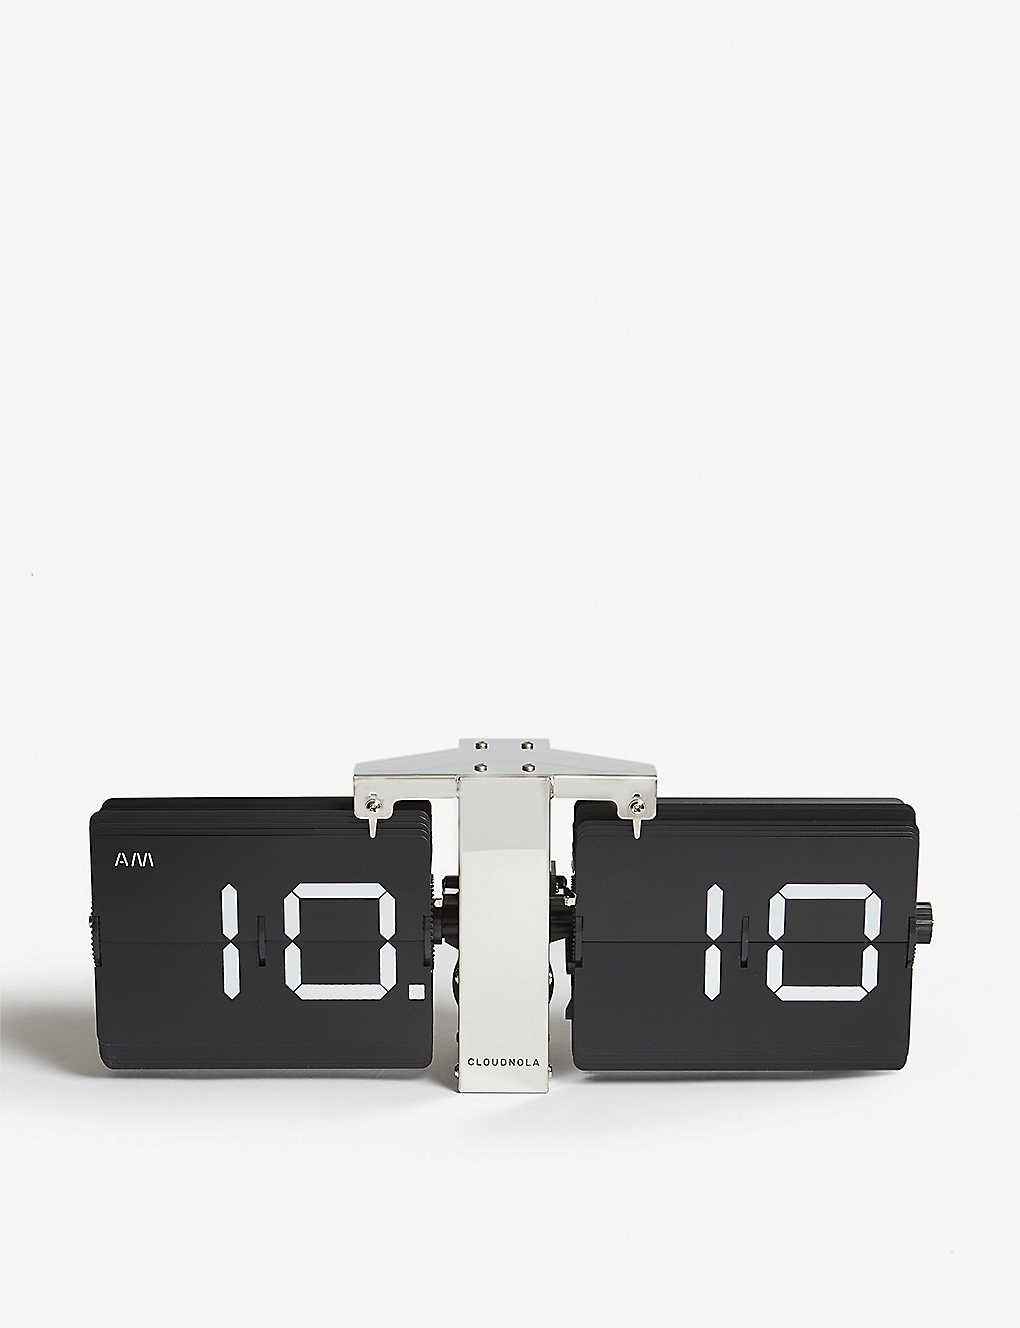 CLOUDNOLA: Flipping Out flip clock